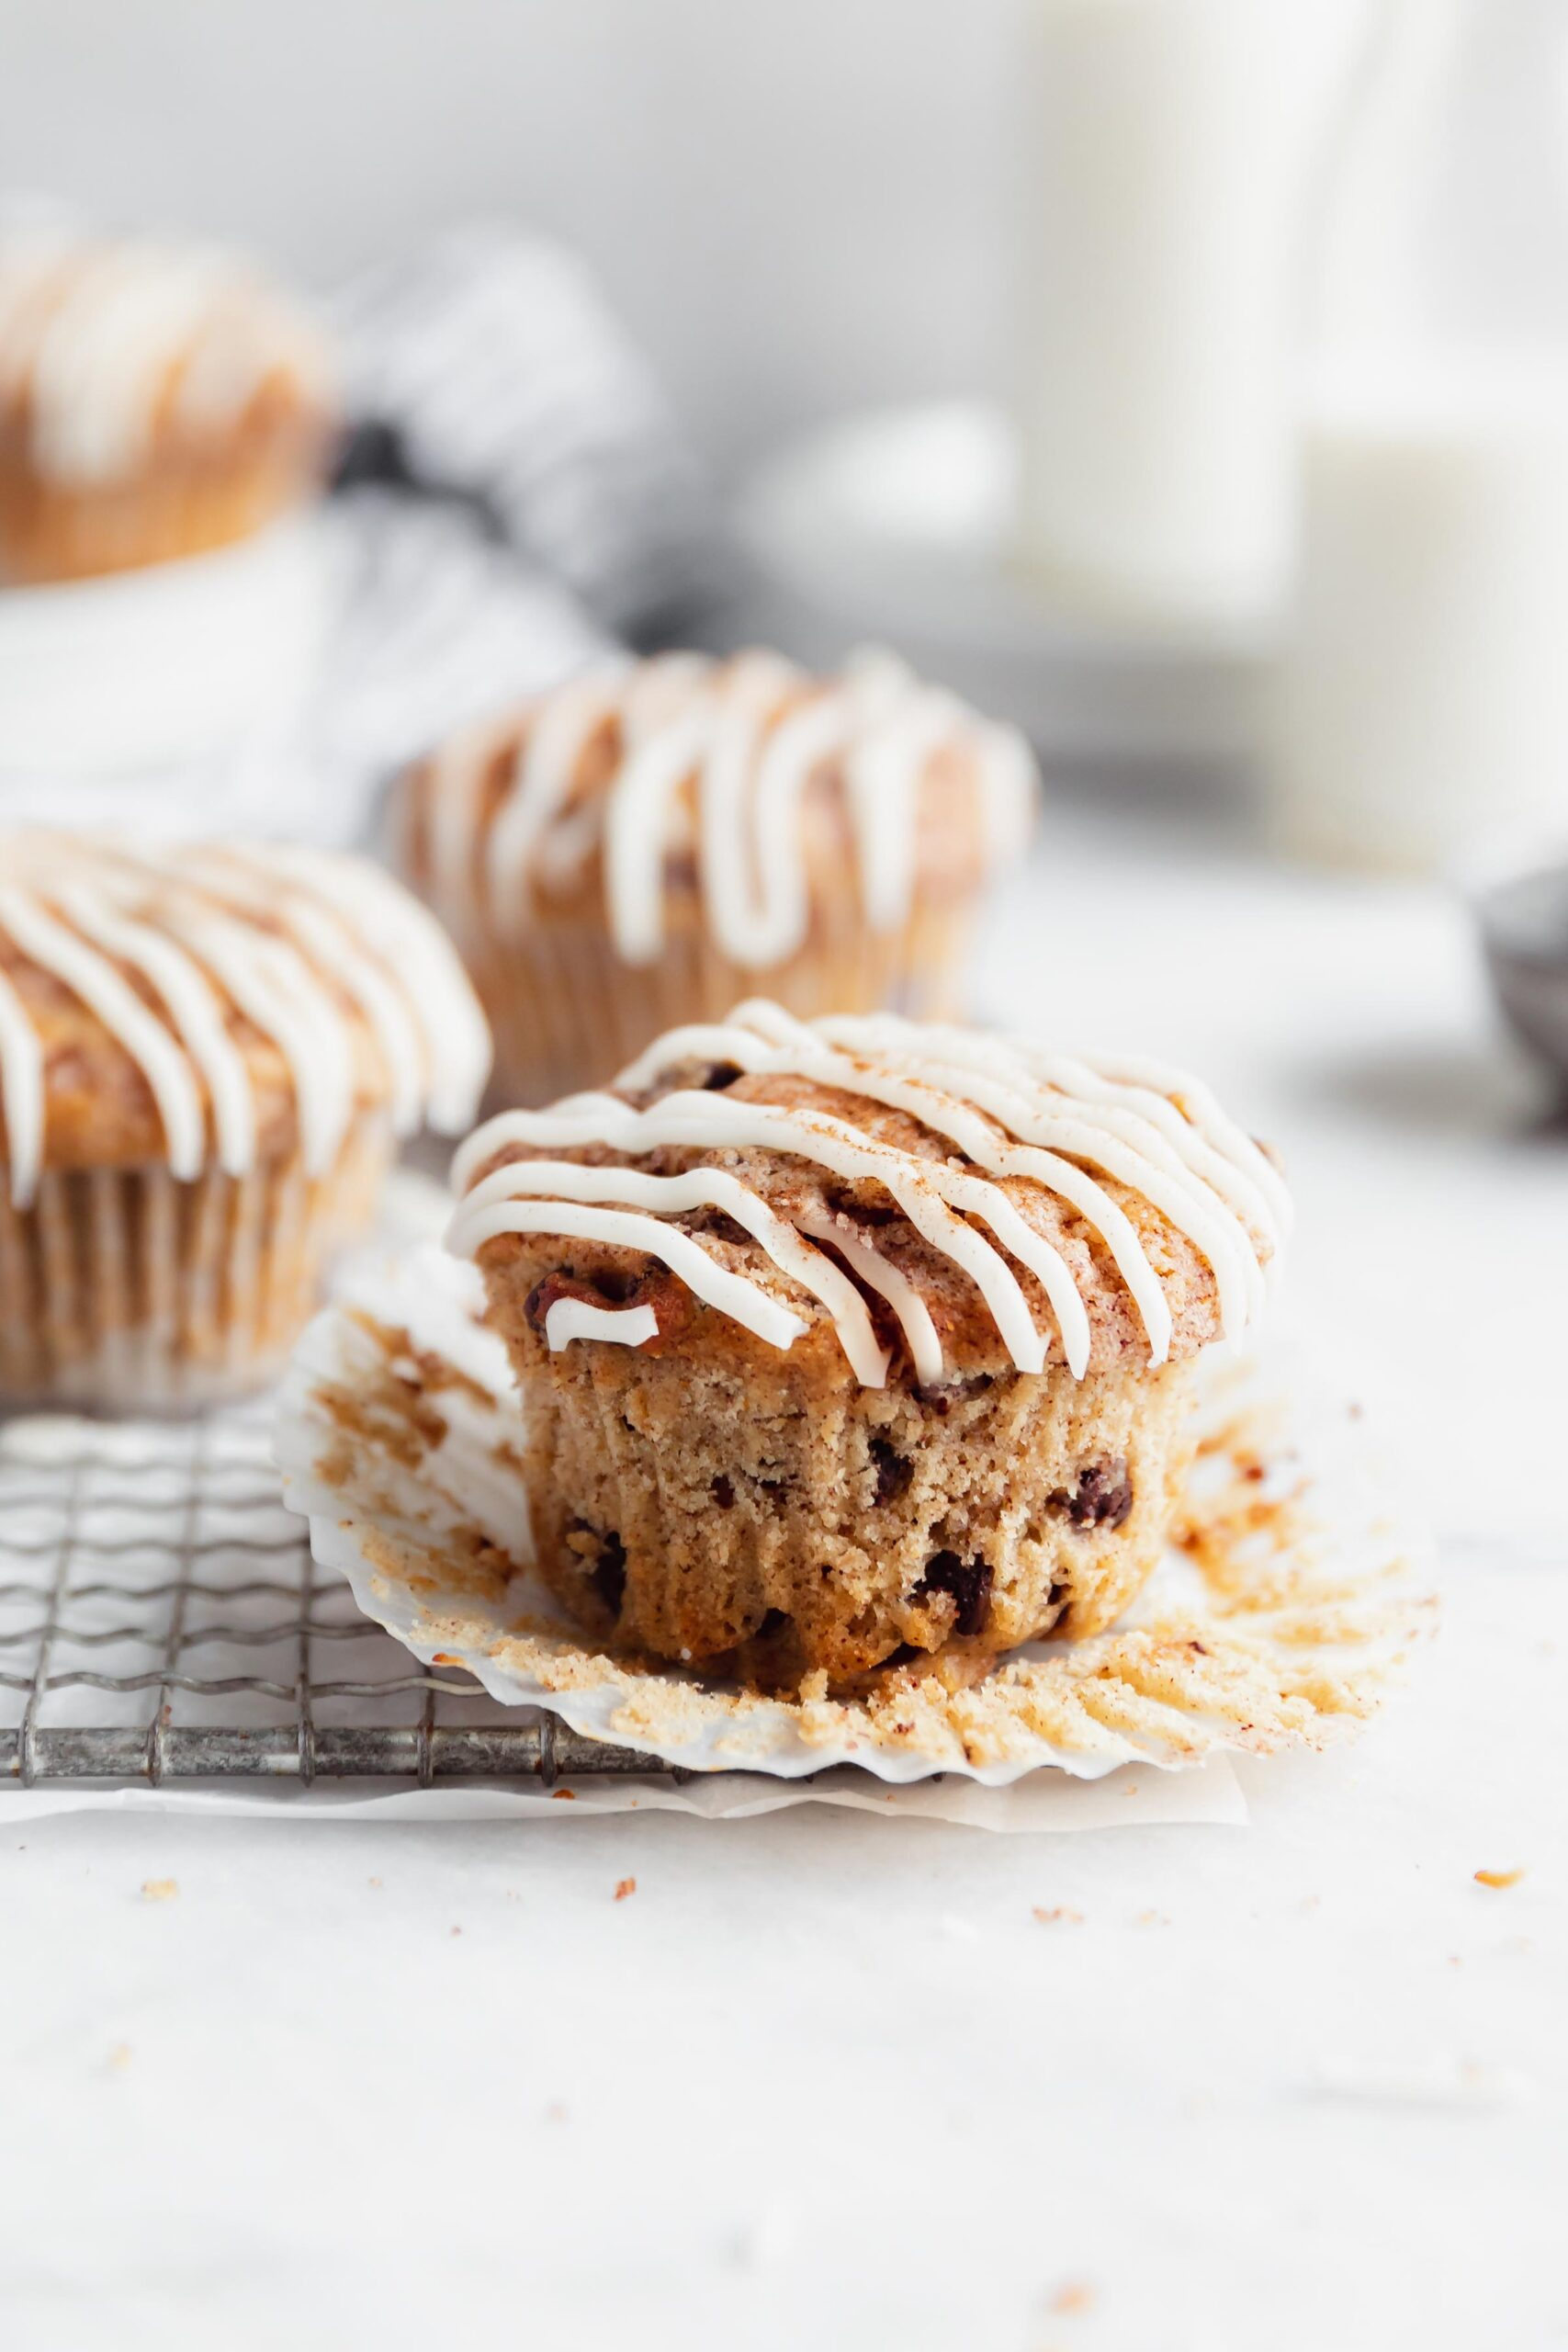 These buttery cinnamon chocolate chip muffins are swirled with ribbons of butter cinnamon sugar mixture